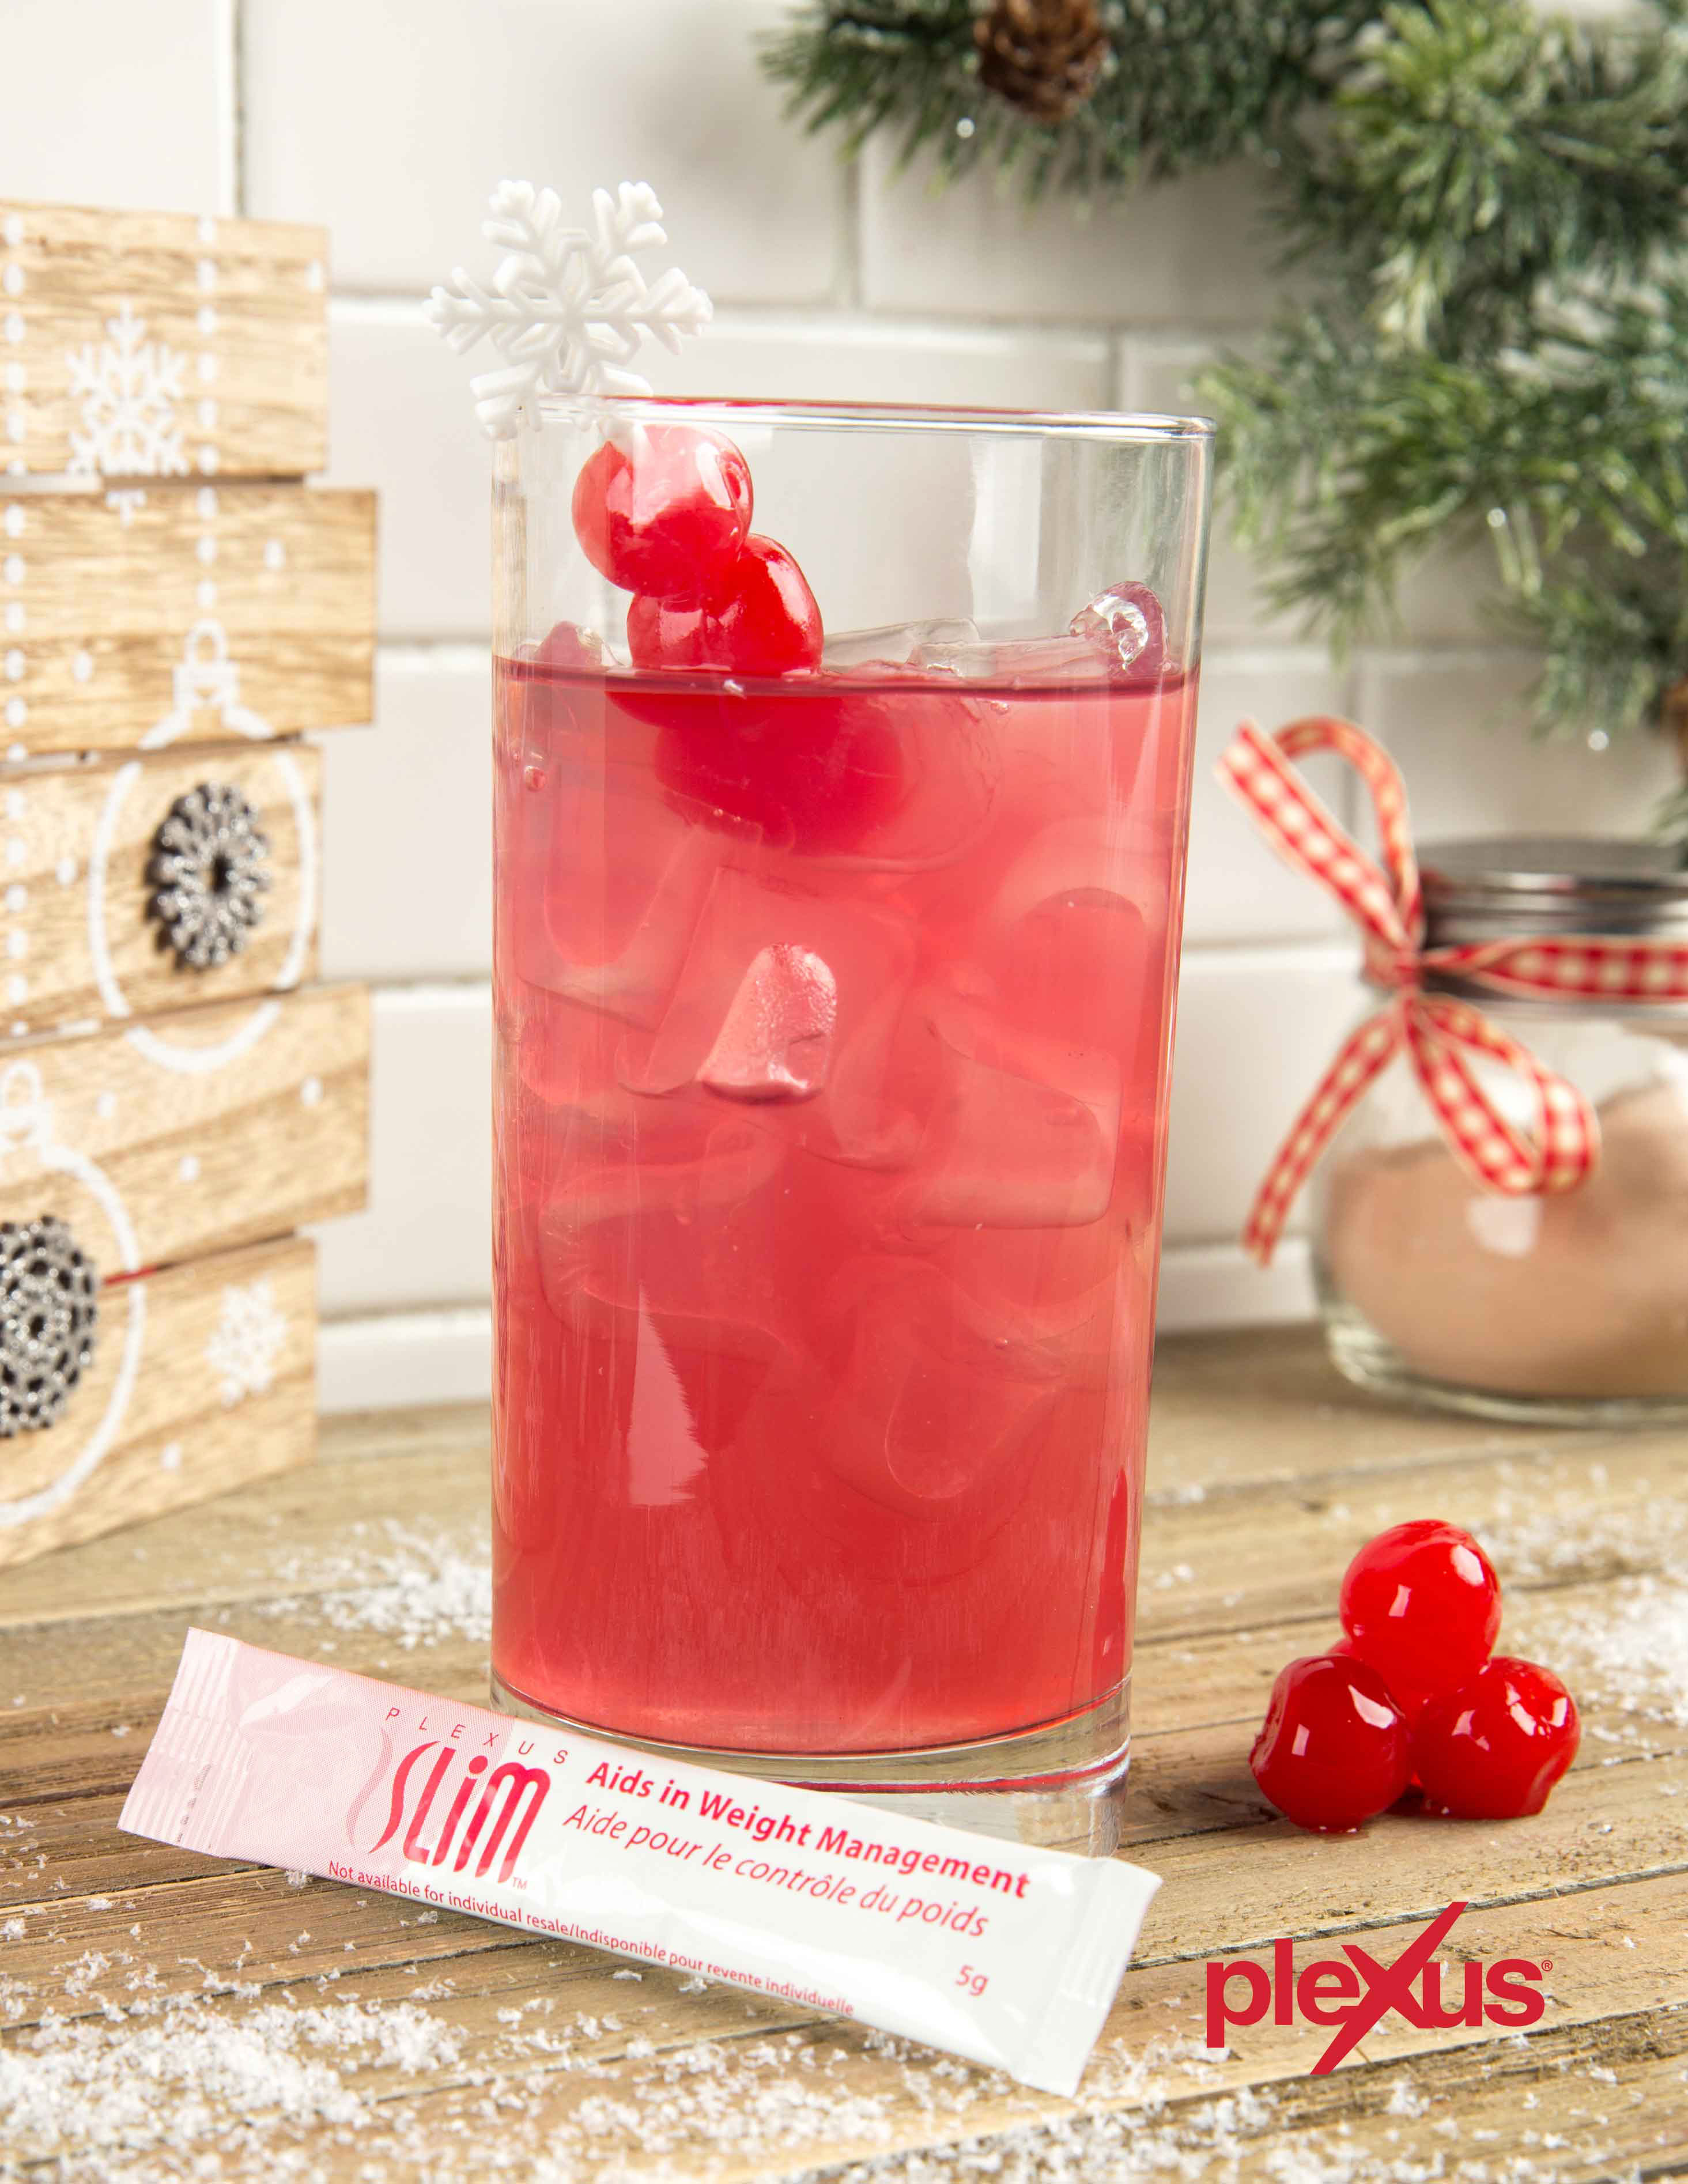 These festive non-alcoholic drinks refresh and delight drinkers who prefer non-alcoholic cocktails, while offering the health benefits and delicious natural berry flavor of Plexus Slim®.